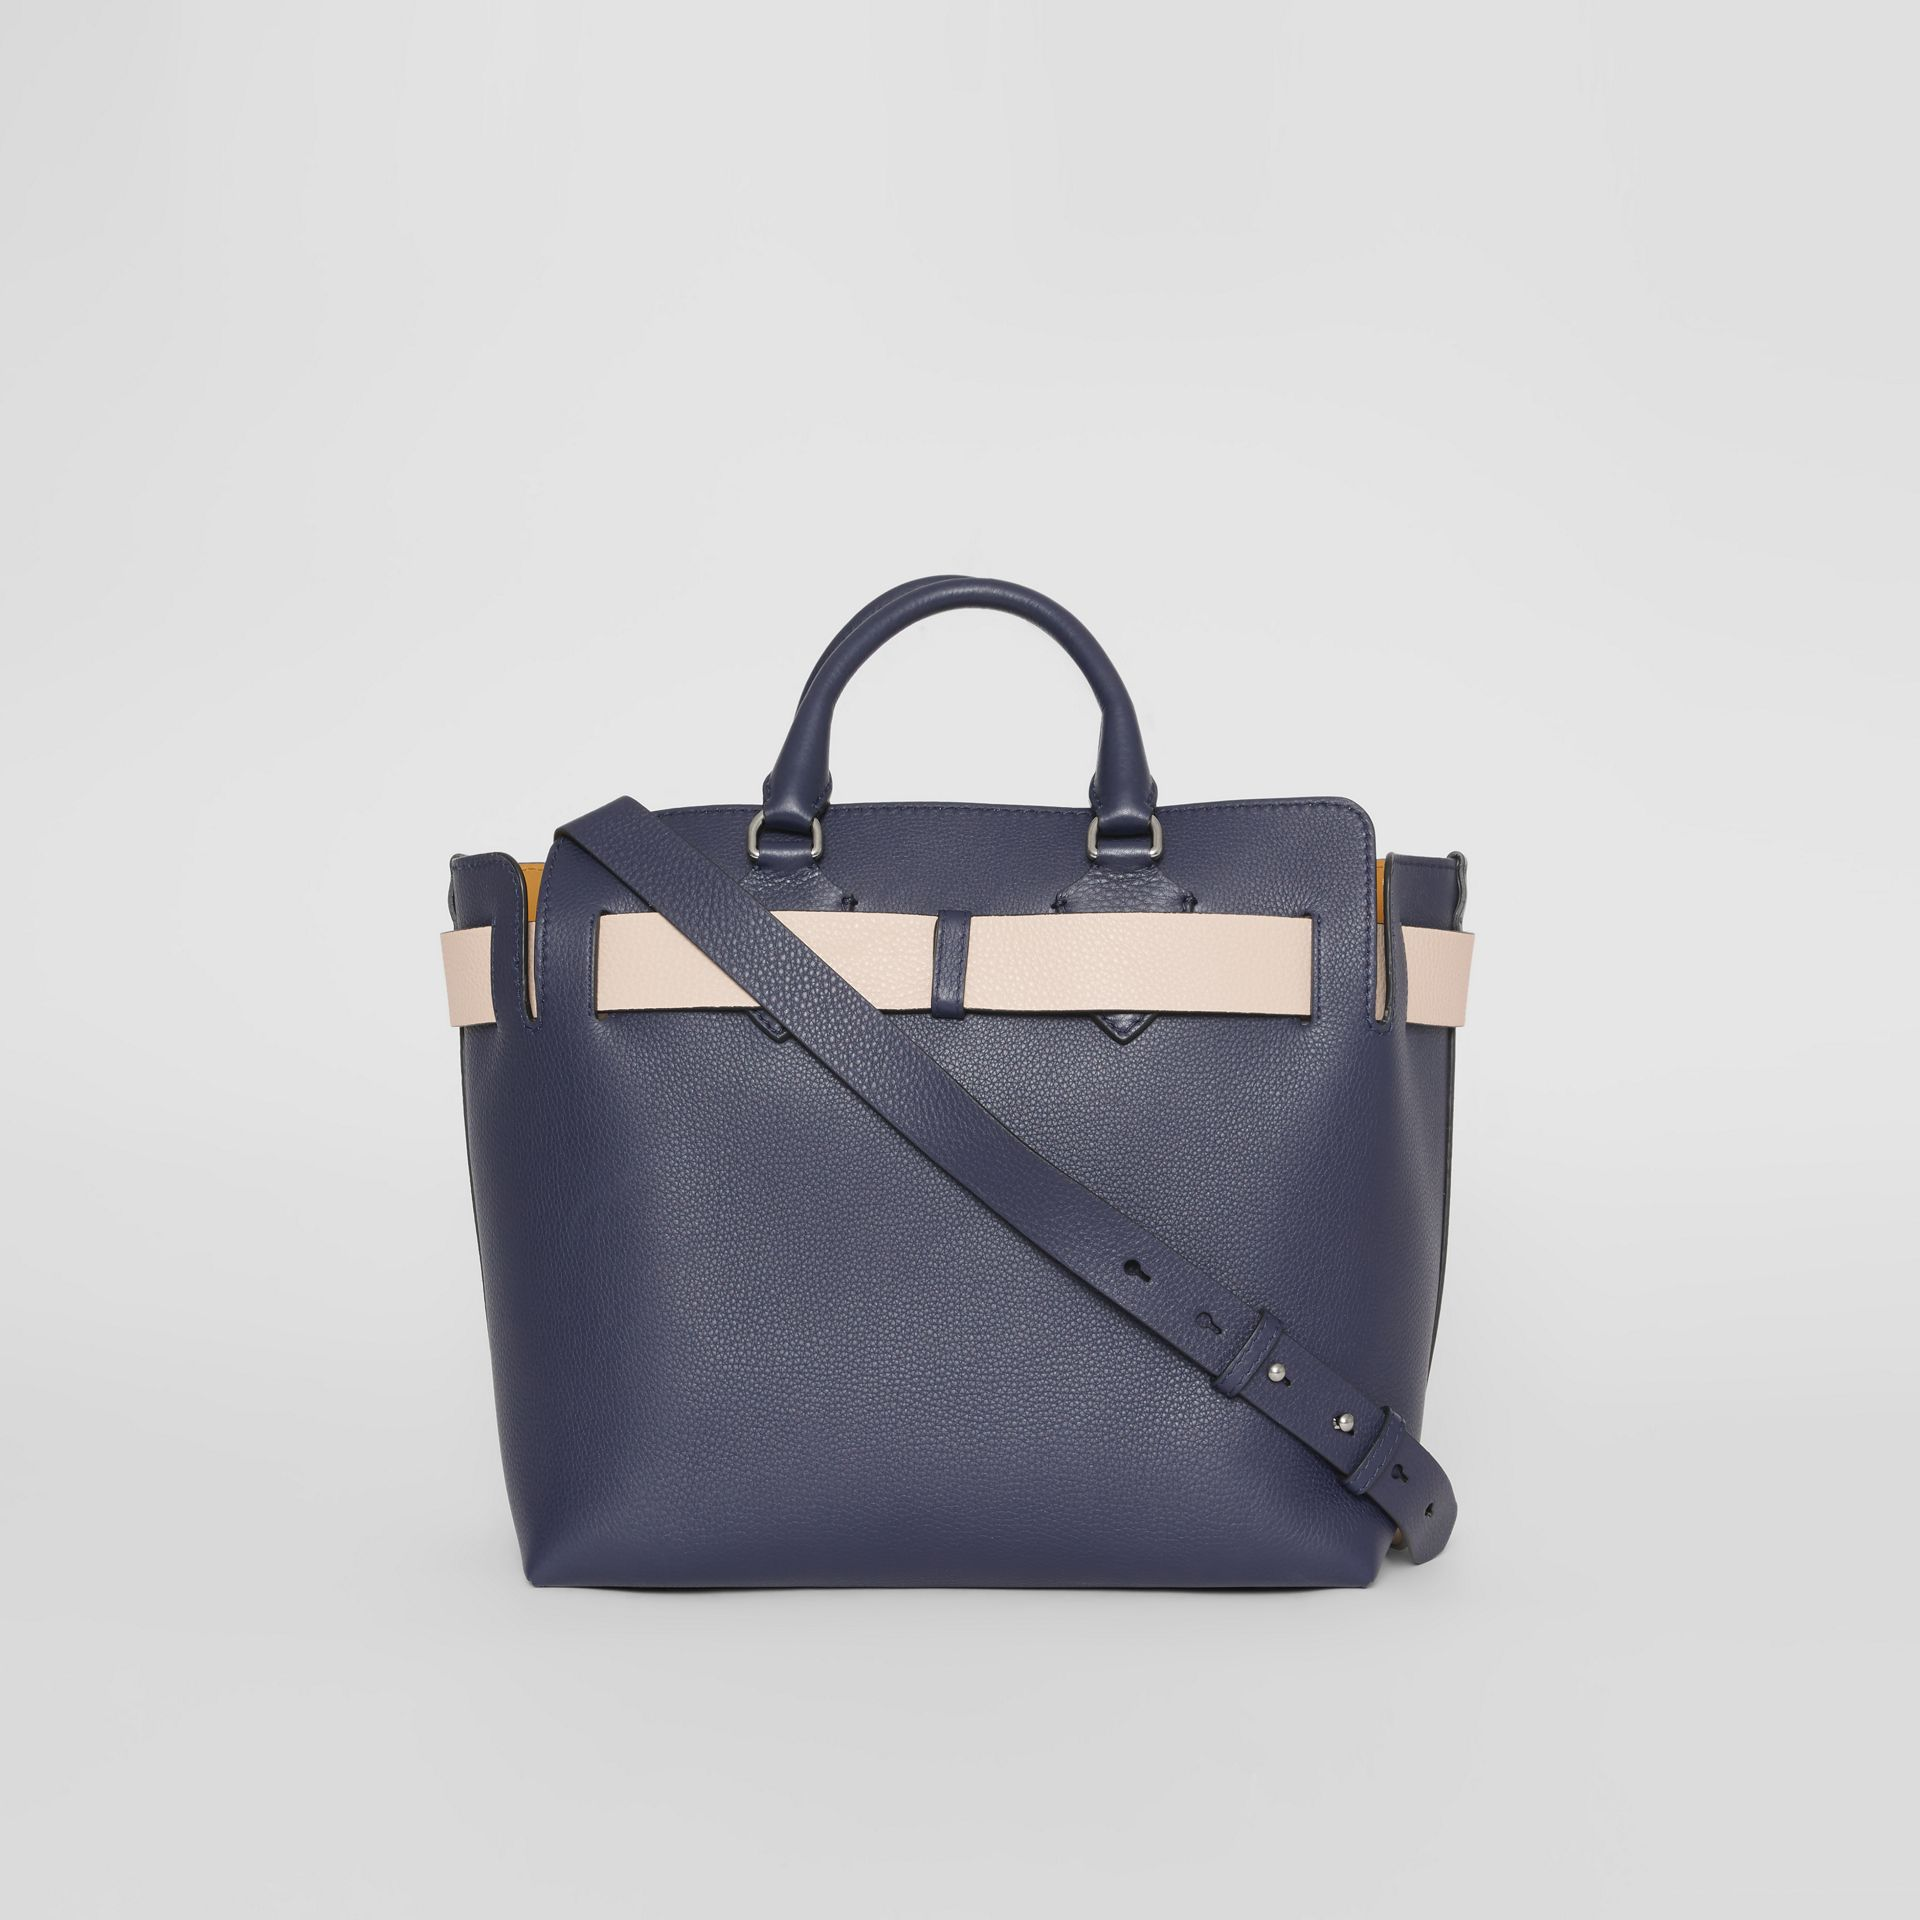 Sac The Belt moyen en cuir (Bleu Régence) - Femme | Burberry Canada - photo de la galerie 7